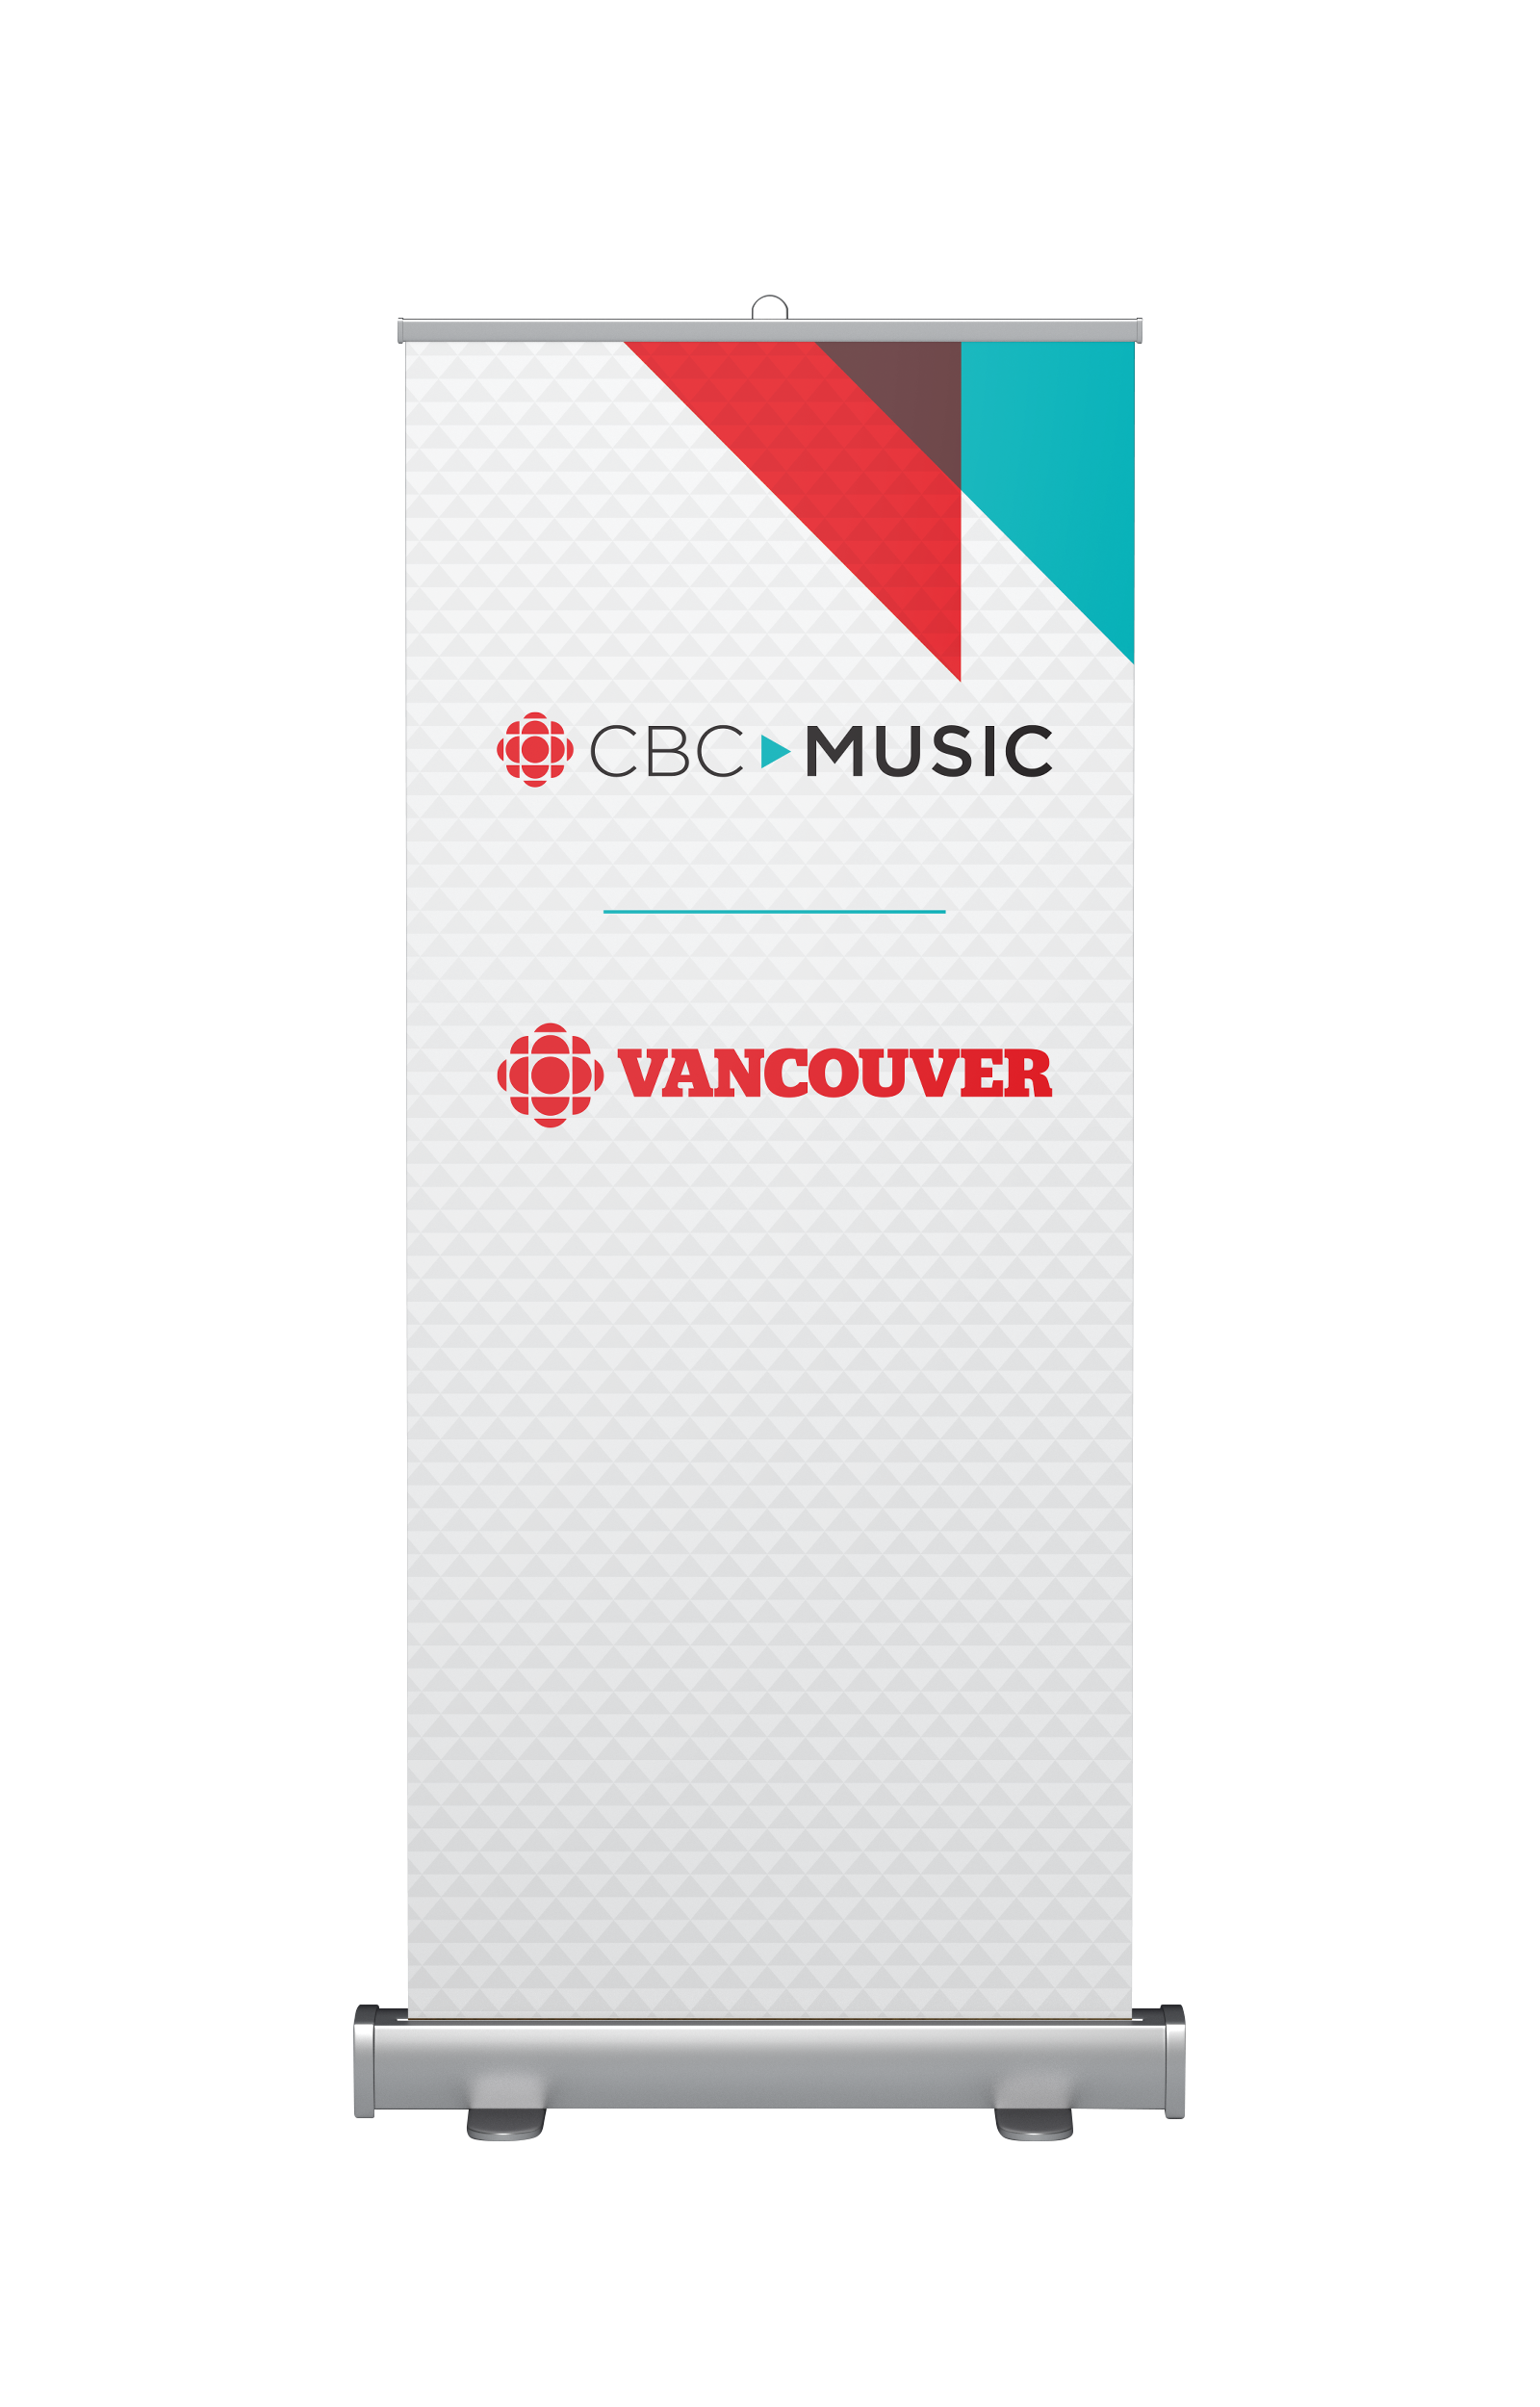 cbc-music_Rollup_front_85x200-working.png